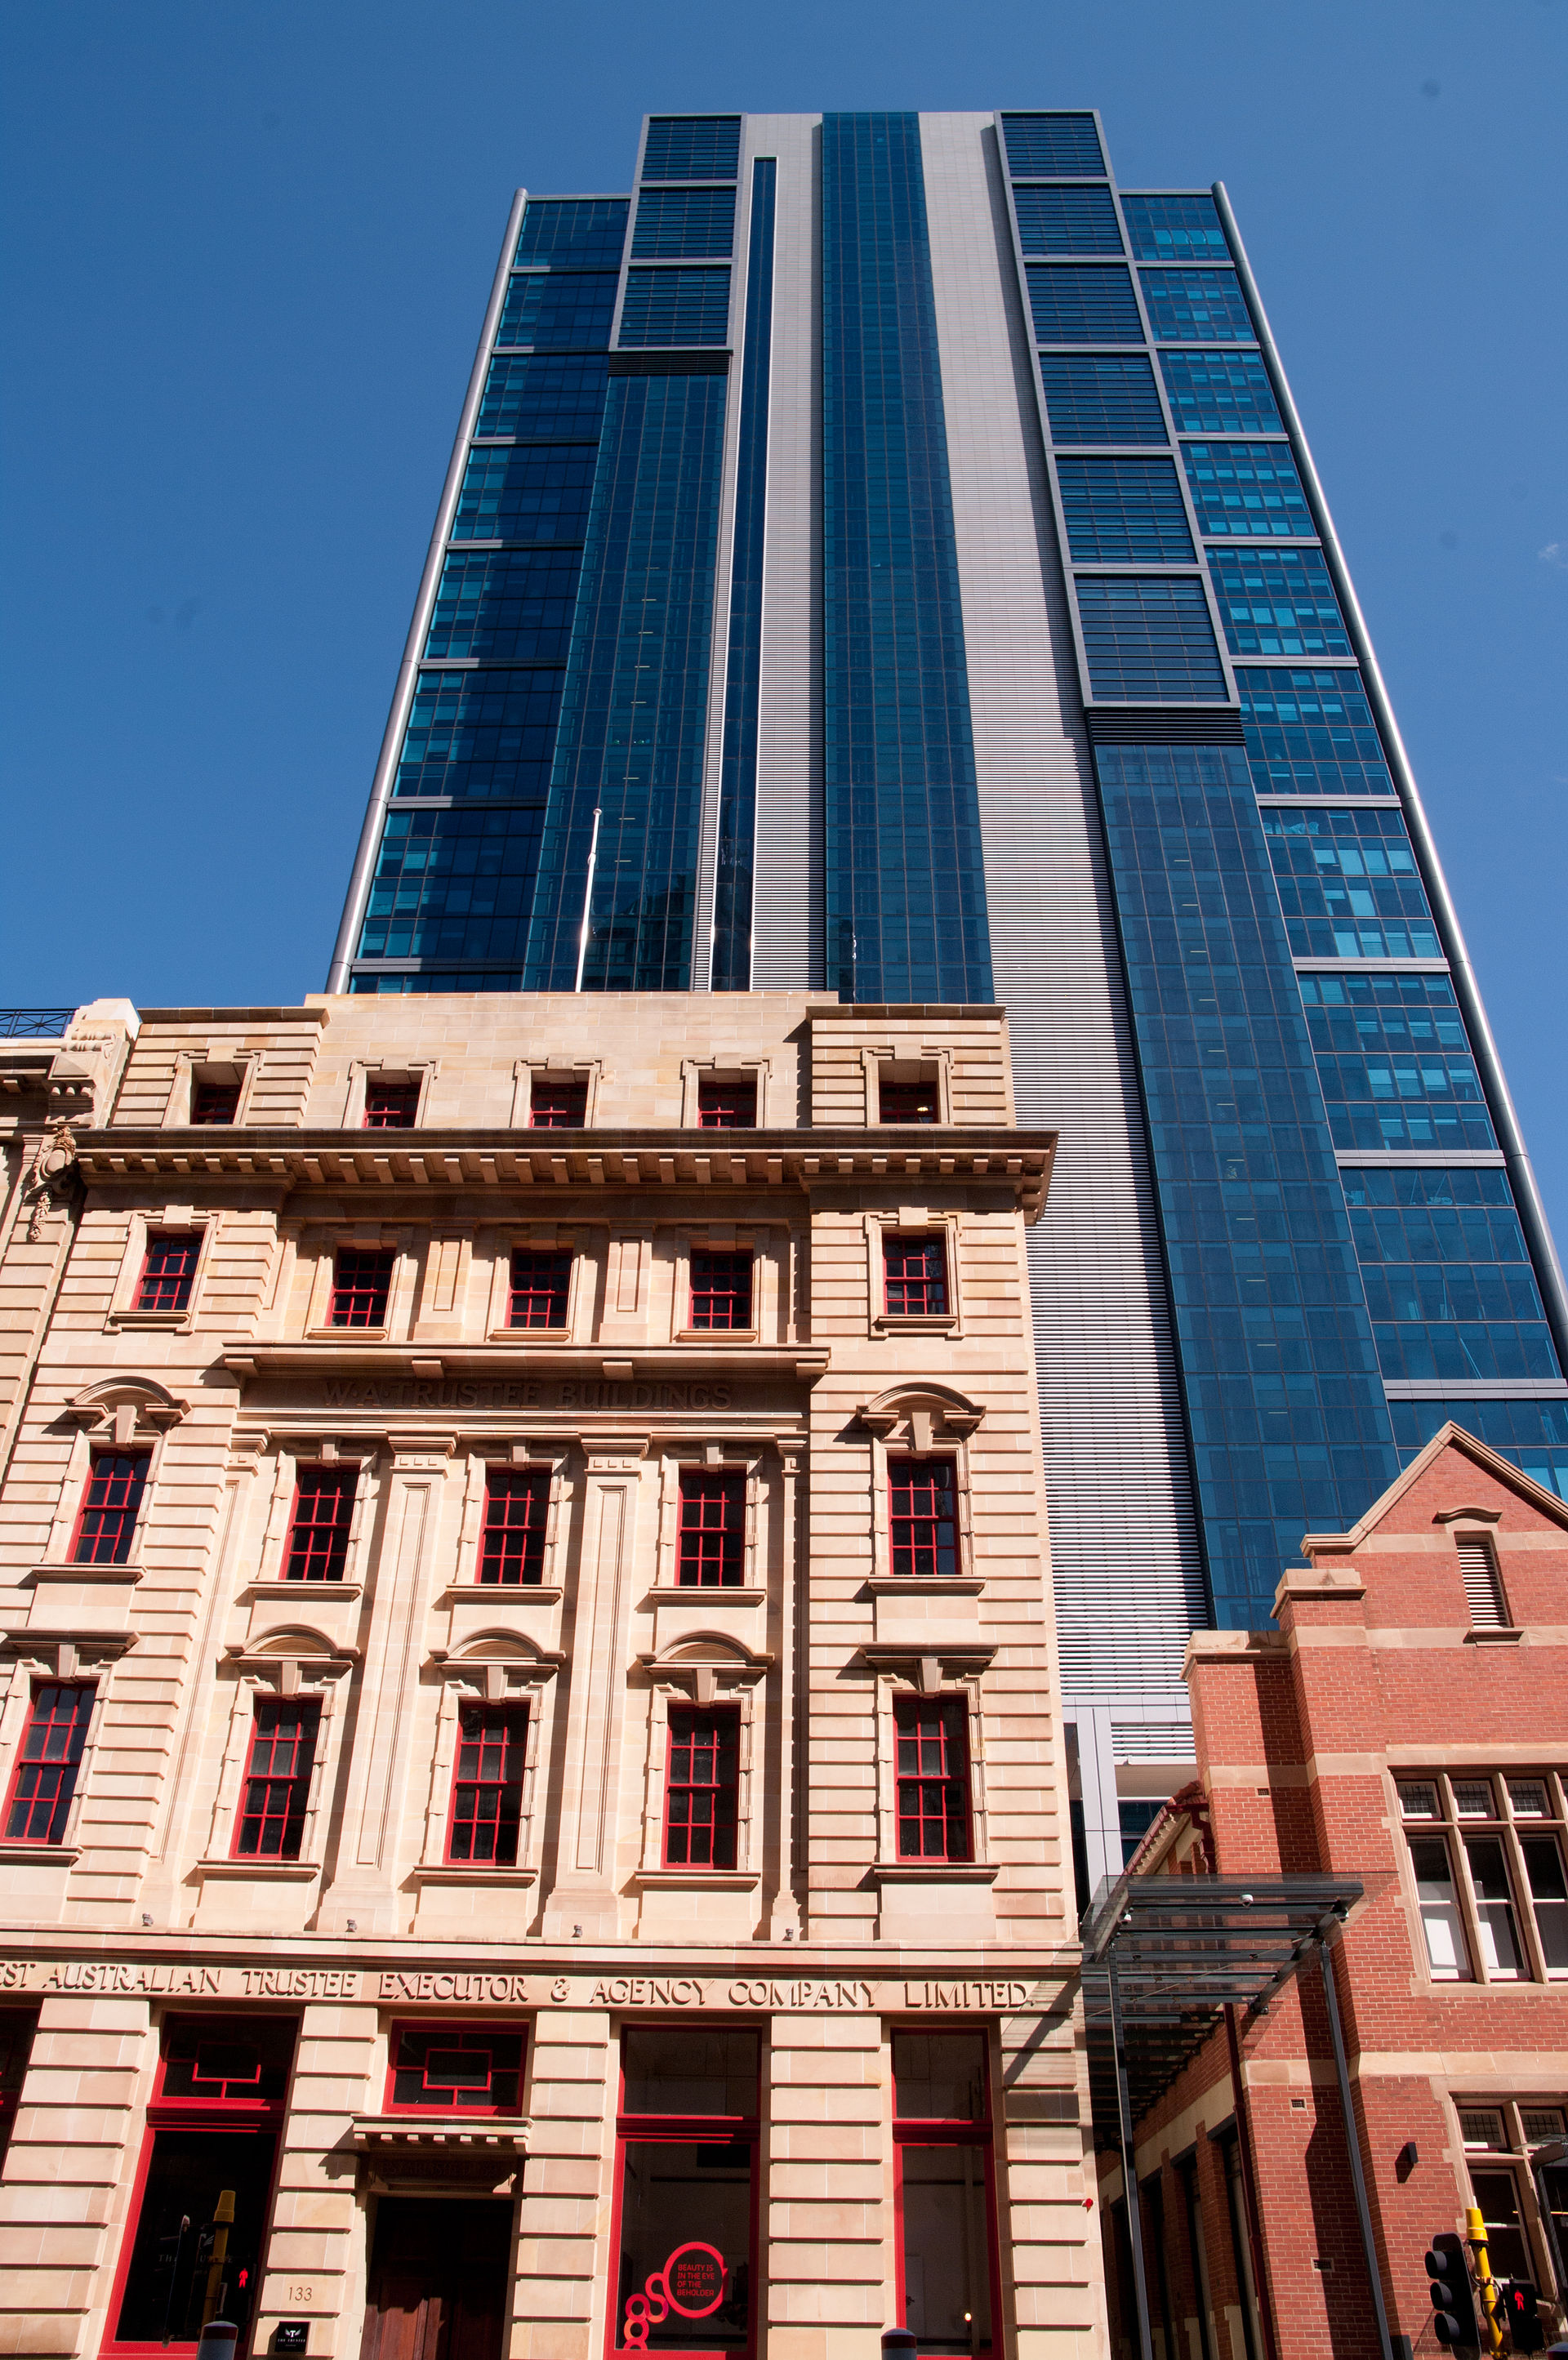 Brookfield place perth wikipedia for 125 st georges terrace perth western australia